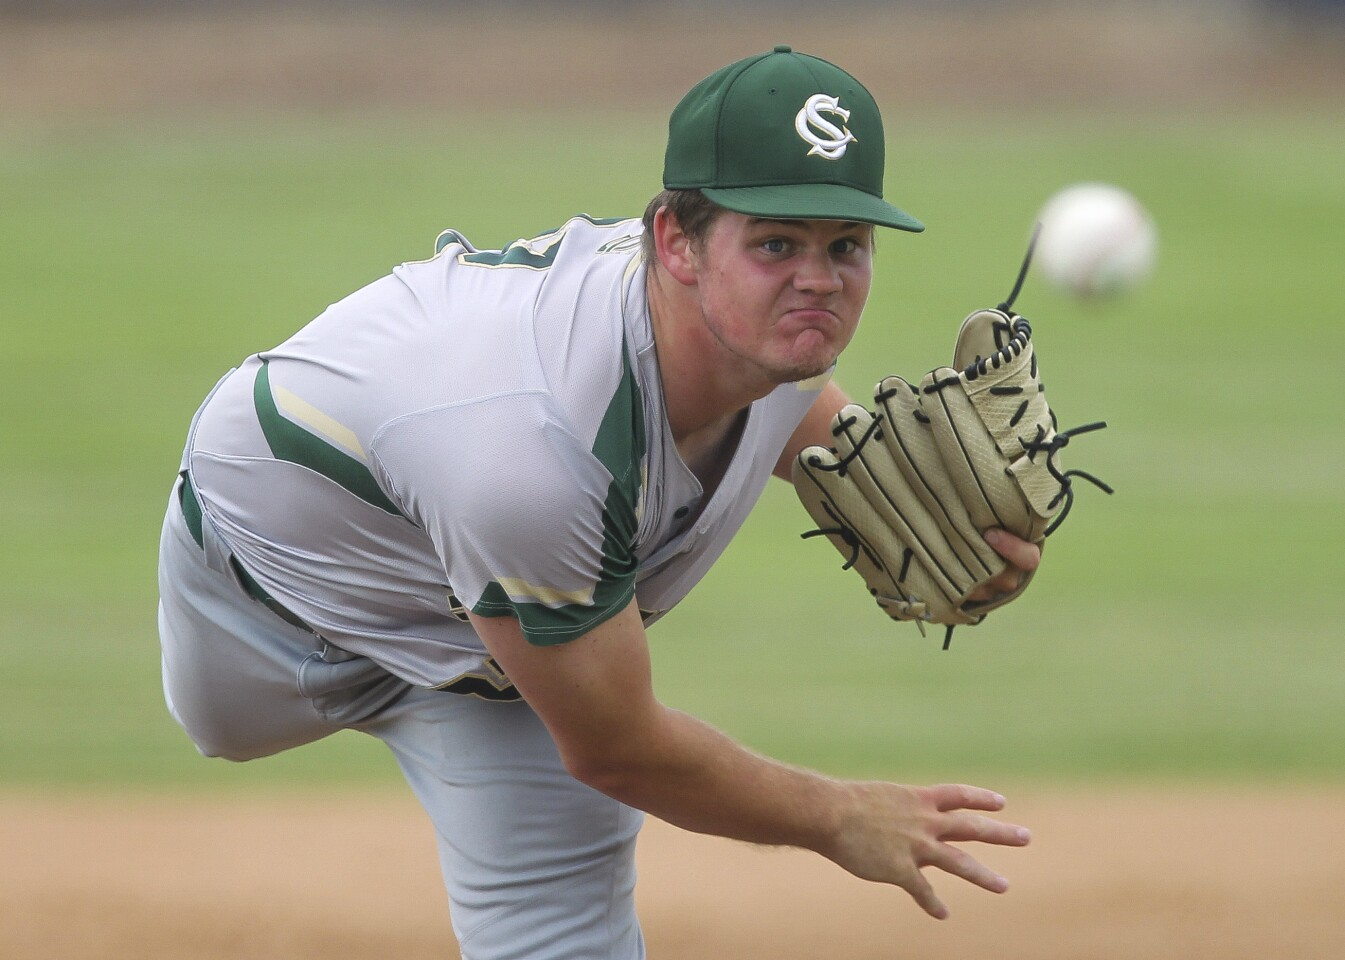 Sage Creek's Stephen Klenske pitches to San Dieguito Academy in the first inning.